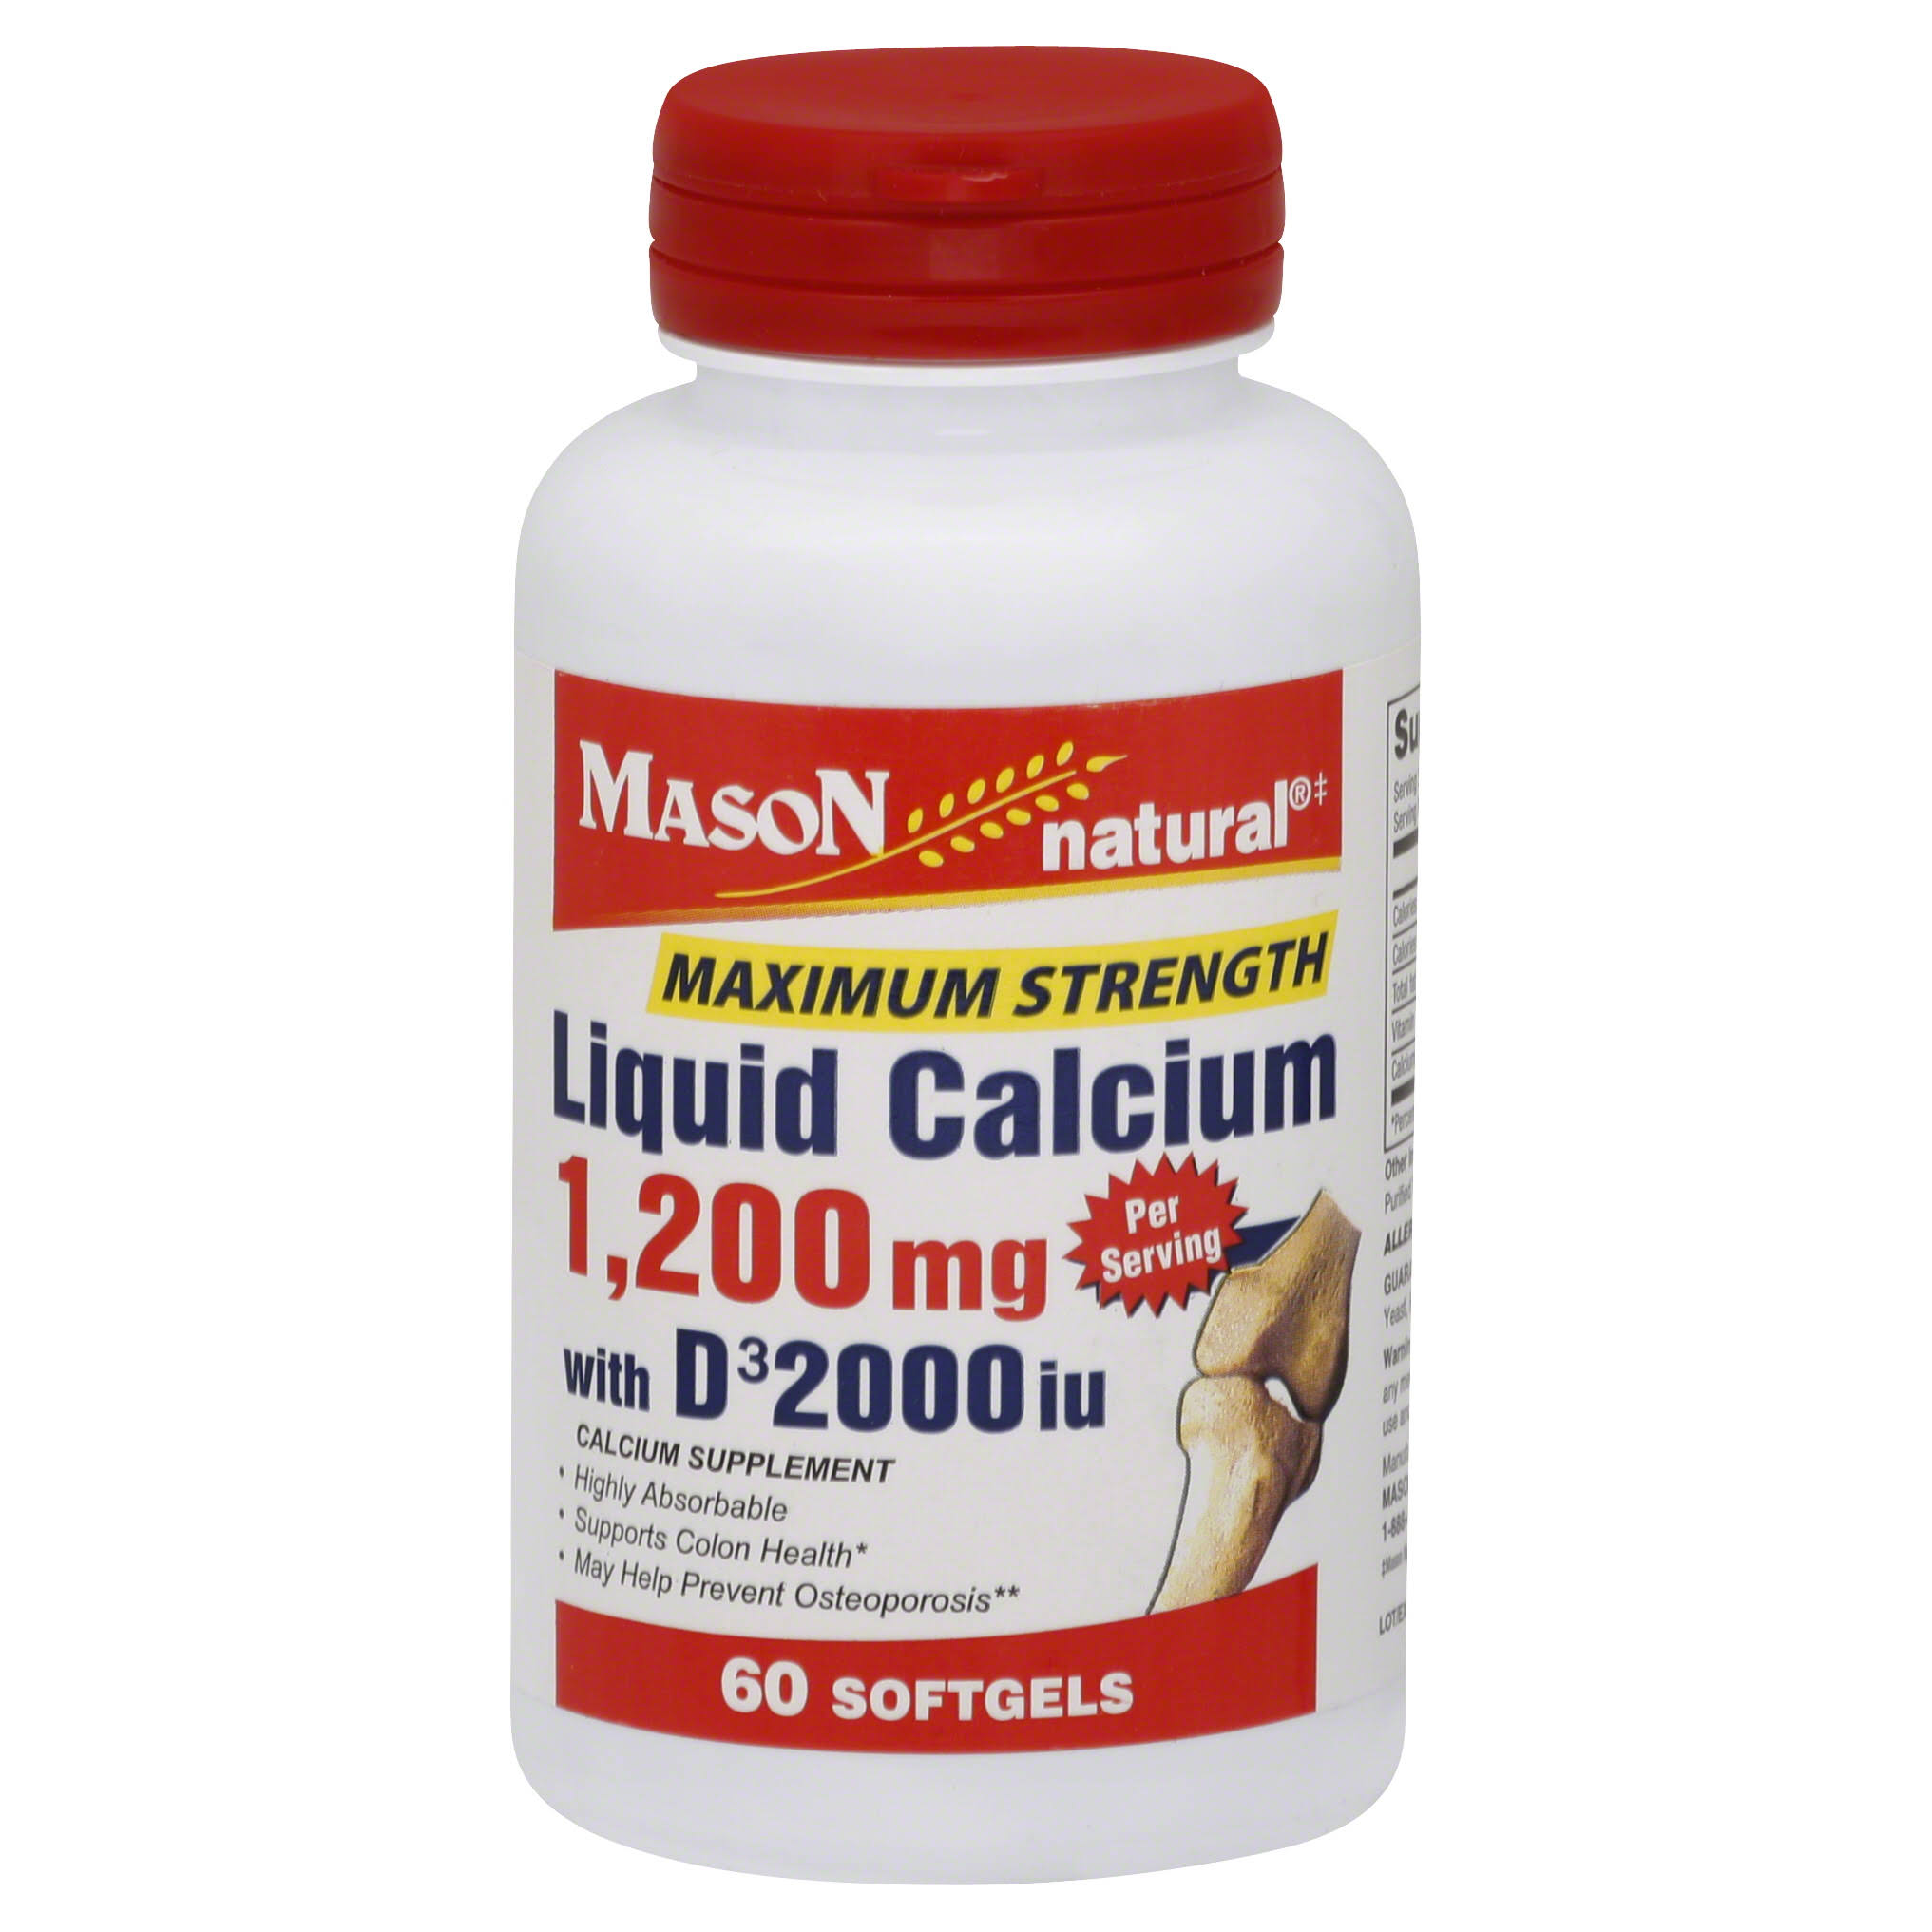 Mason Vitamins Natural Liquid Calcium Supplement - 1,200mg, 60 Softgels